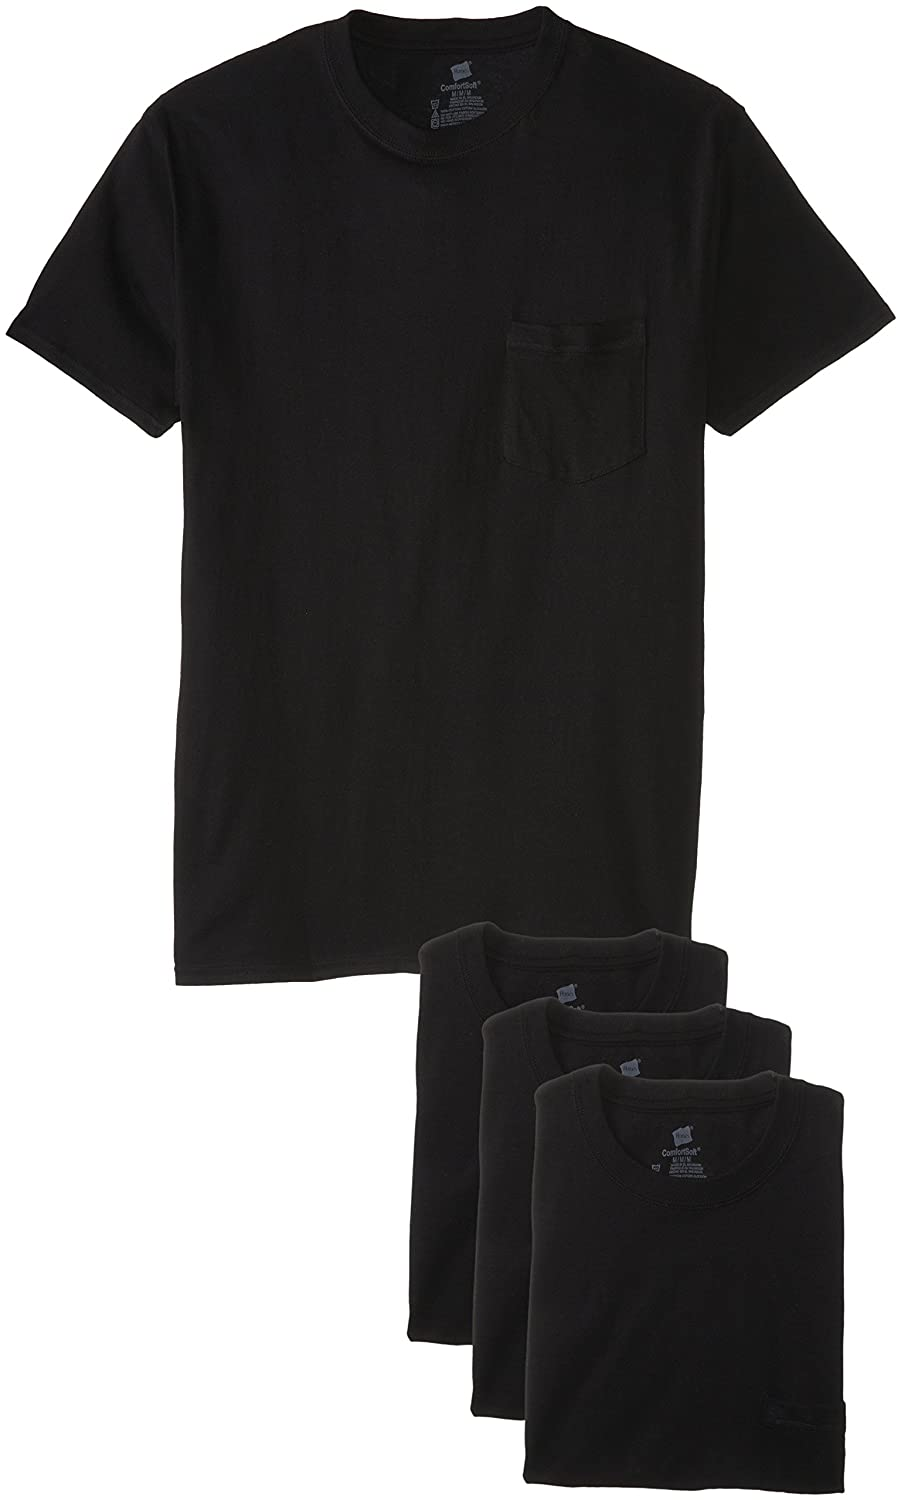 Hanes Men's 4-Pack Assorted Pocket T-Shirt Hanes Men's Underwear 2176BK